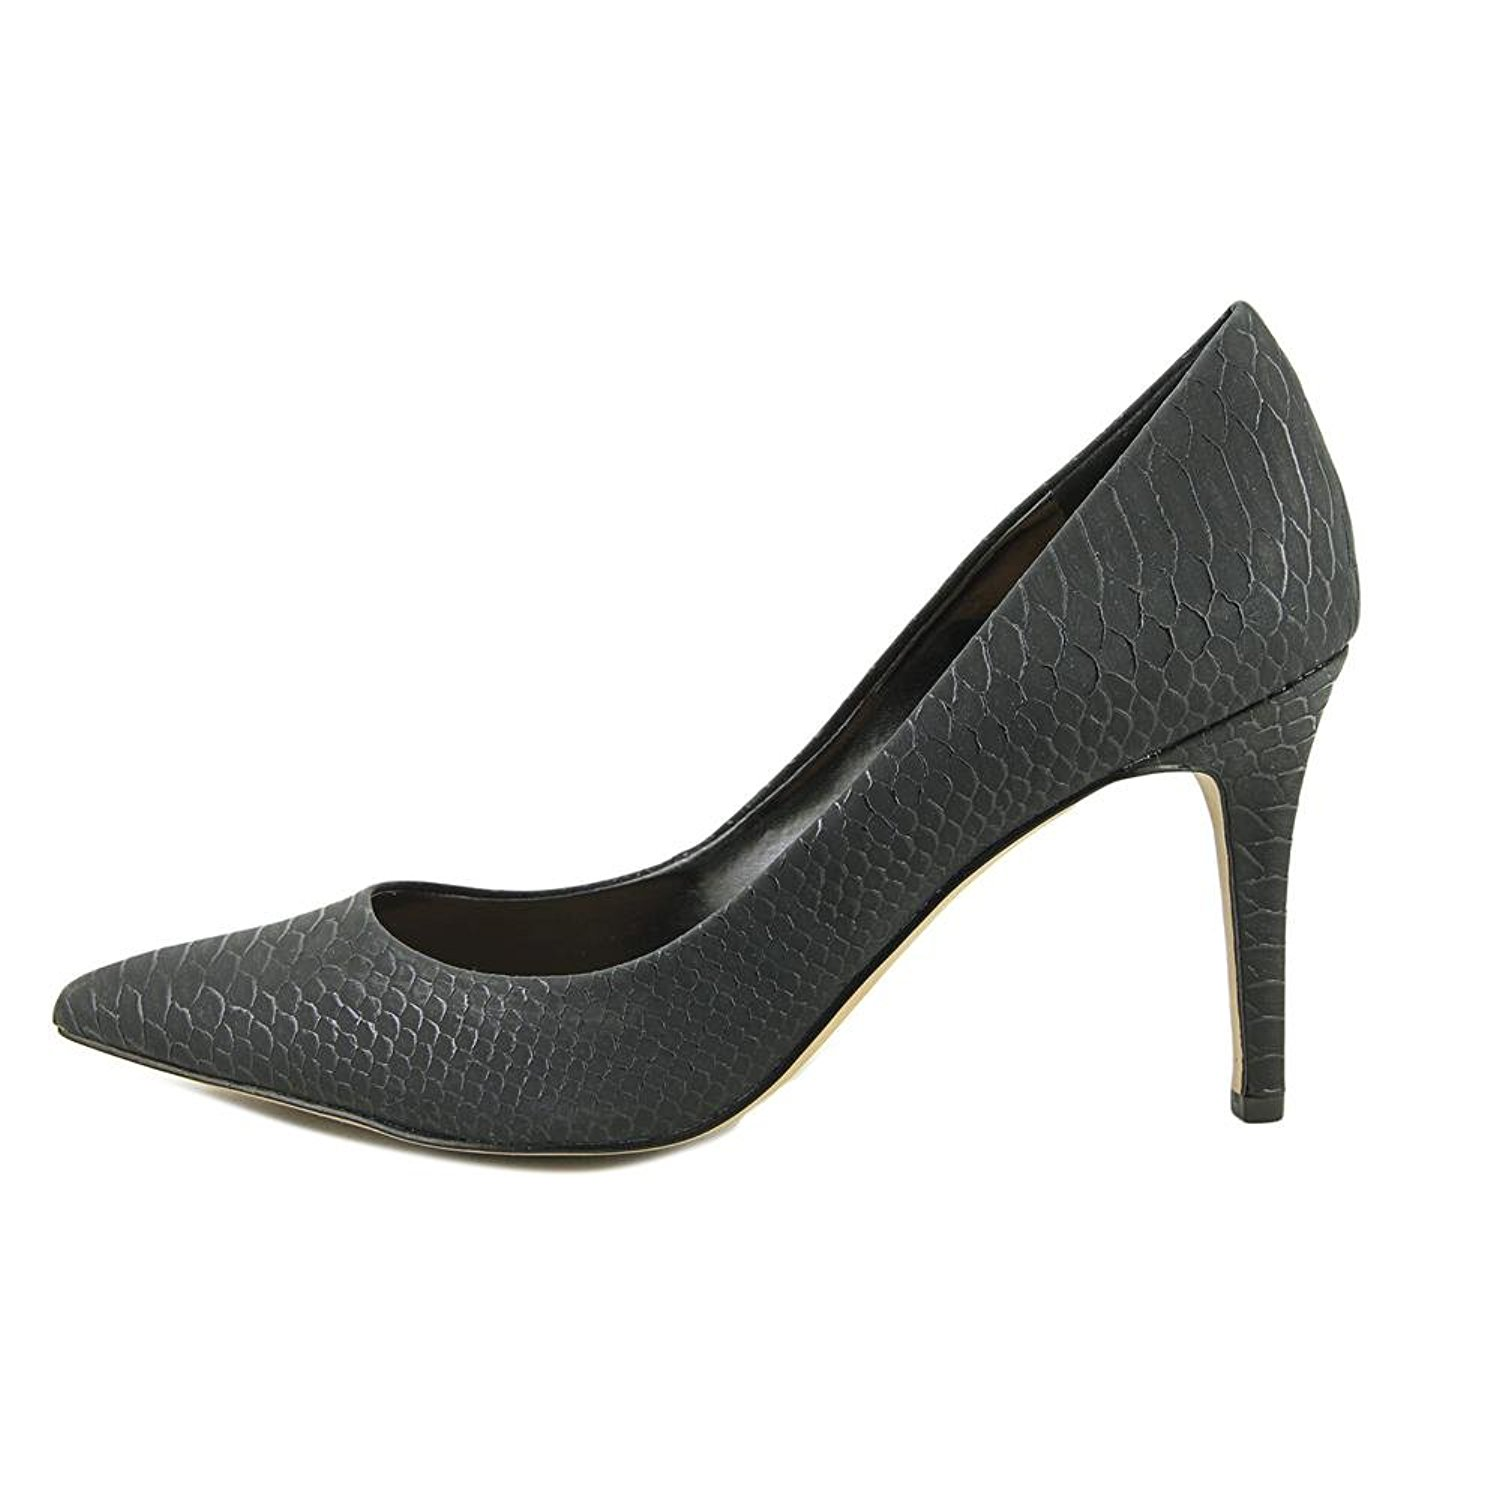 17604bed1 Details about Jessica Simpson Womens Levin Pointed Toe Classic Pumps, Black,  Size 8.5 fcCJ